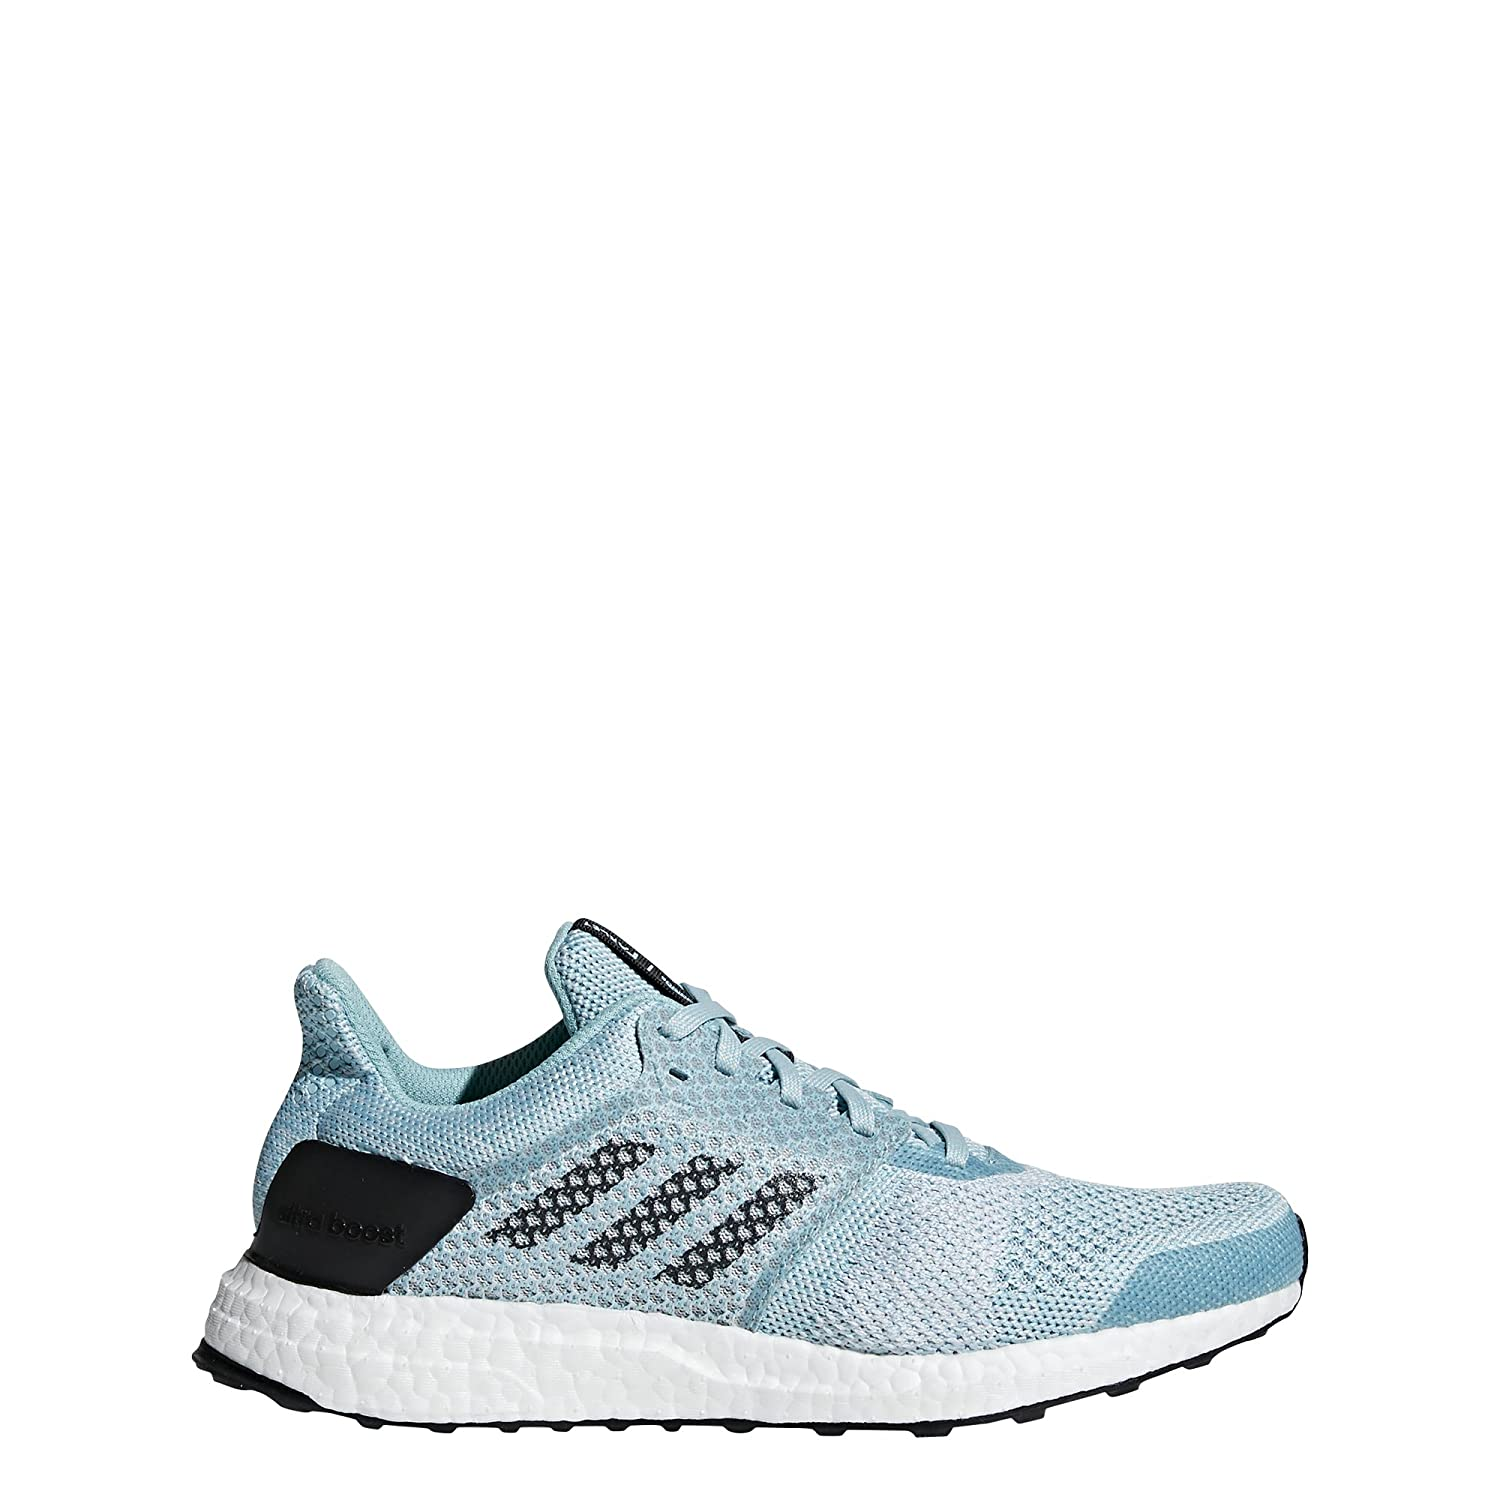 adidas Women's Ultraboost St Parley Running Shoe B077XLR4MS 7 B(M) US|Blue Spirit/White/Chalk Pearl